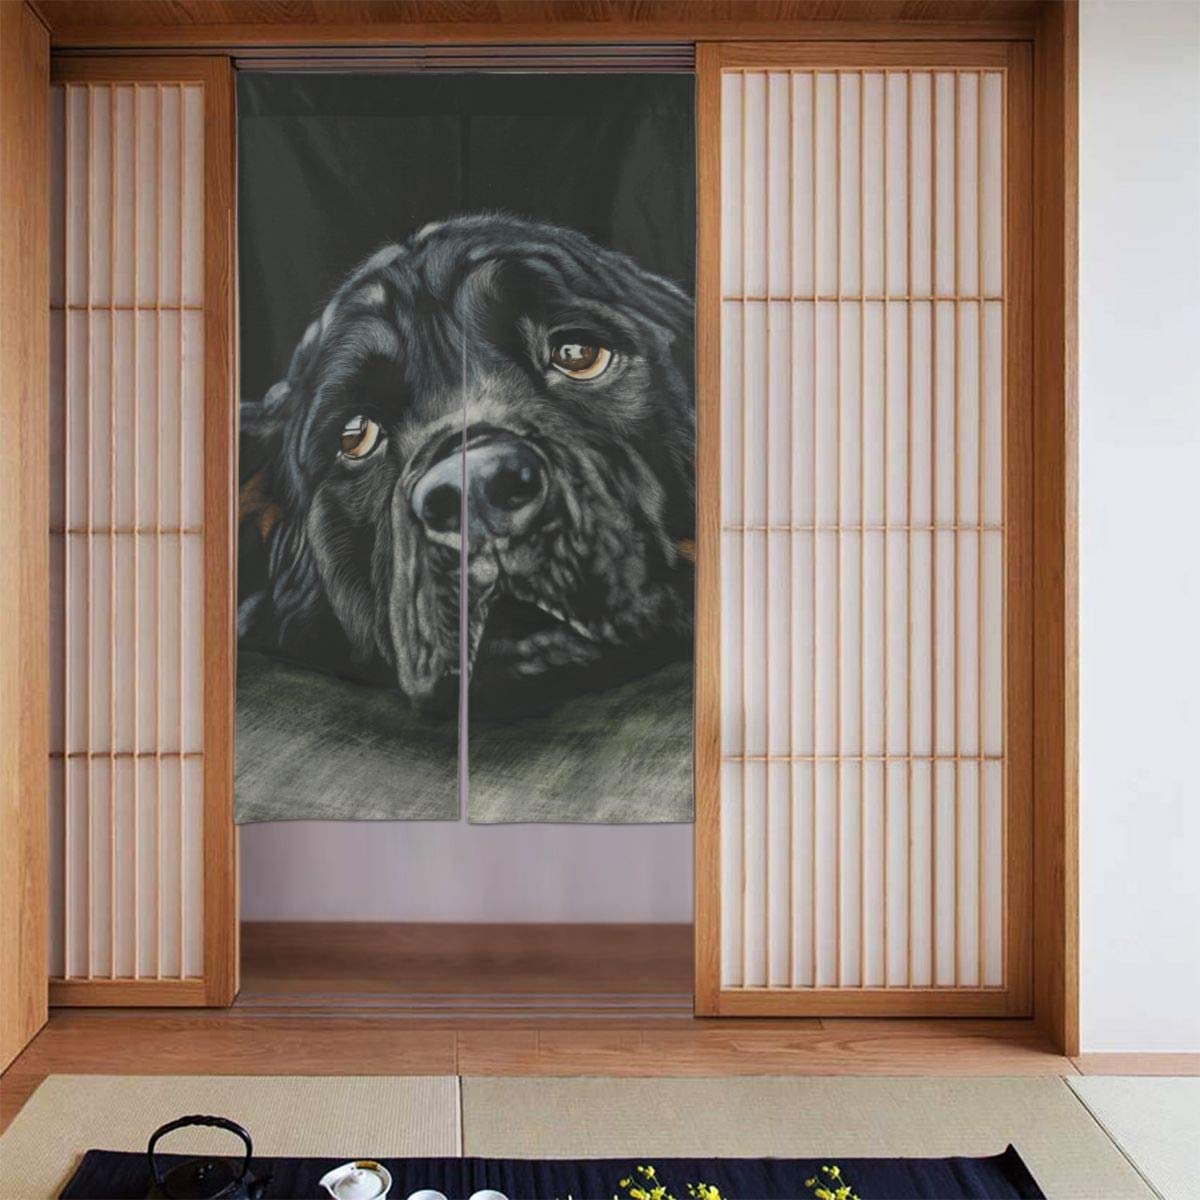 Amazon Com Asdjlk Rottweiler Breed Dog Black Blackout Curtain Panels For Girls Room Nursery Essential Thermal Insulated Blackout Drapes 34 X 56 Inches Home Kitchen